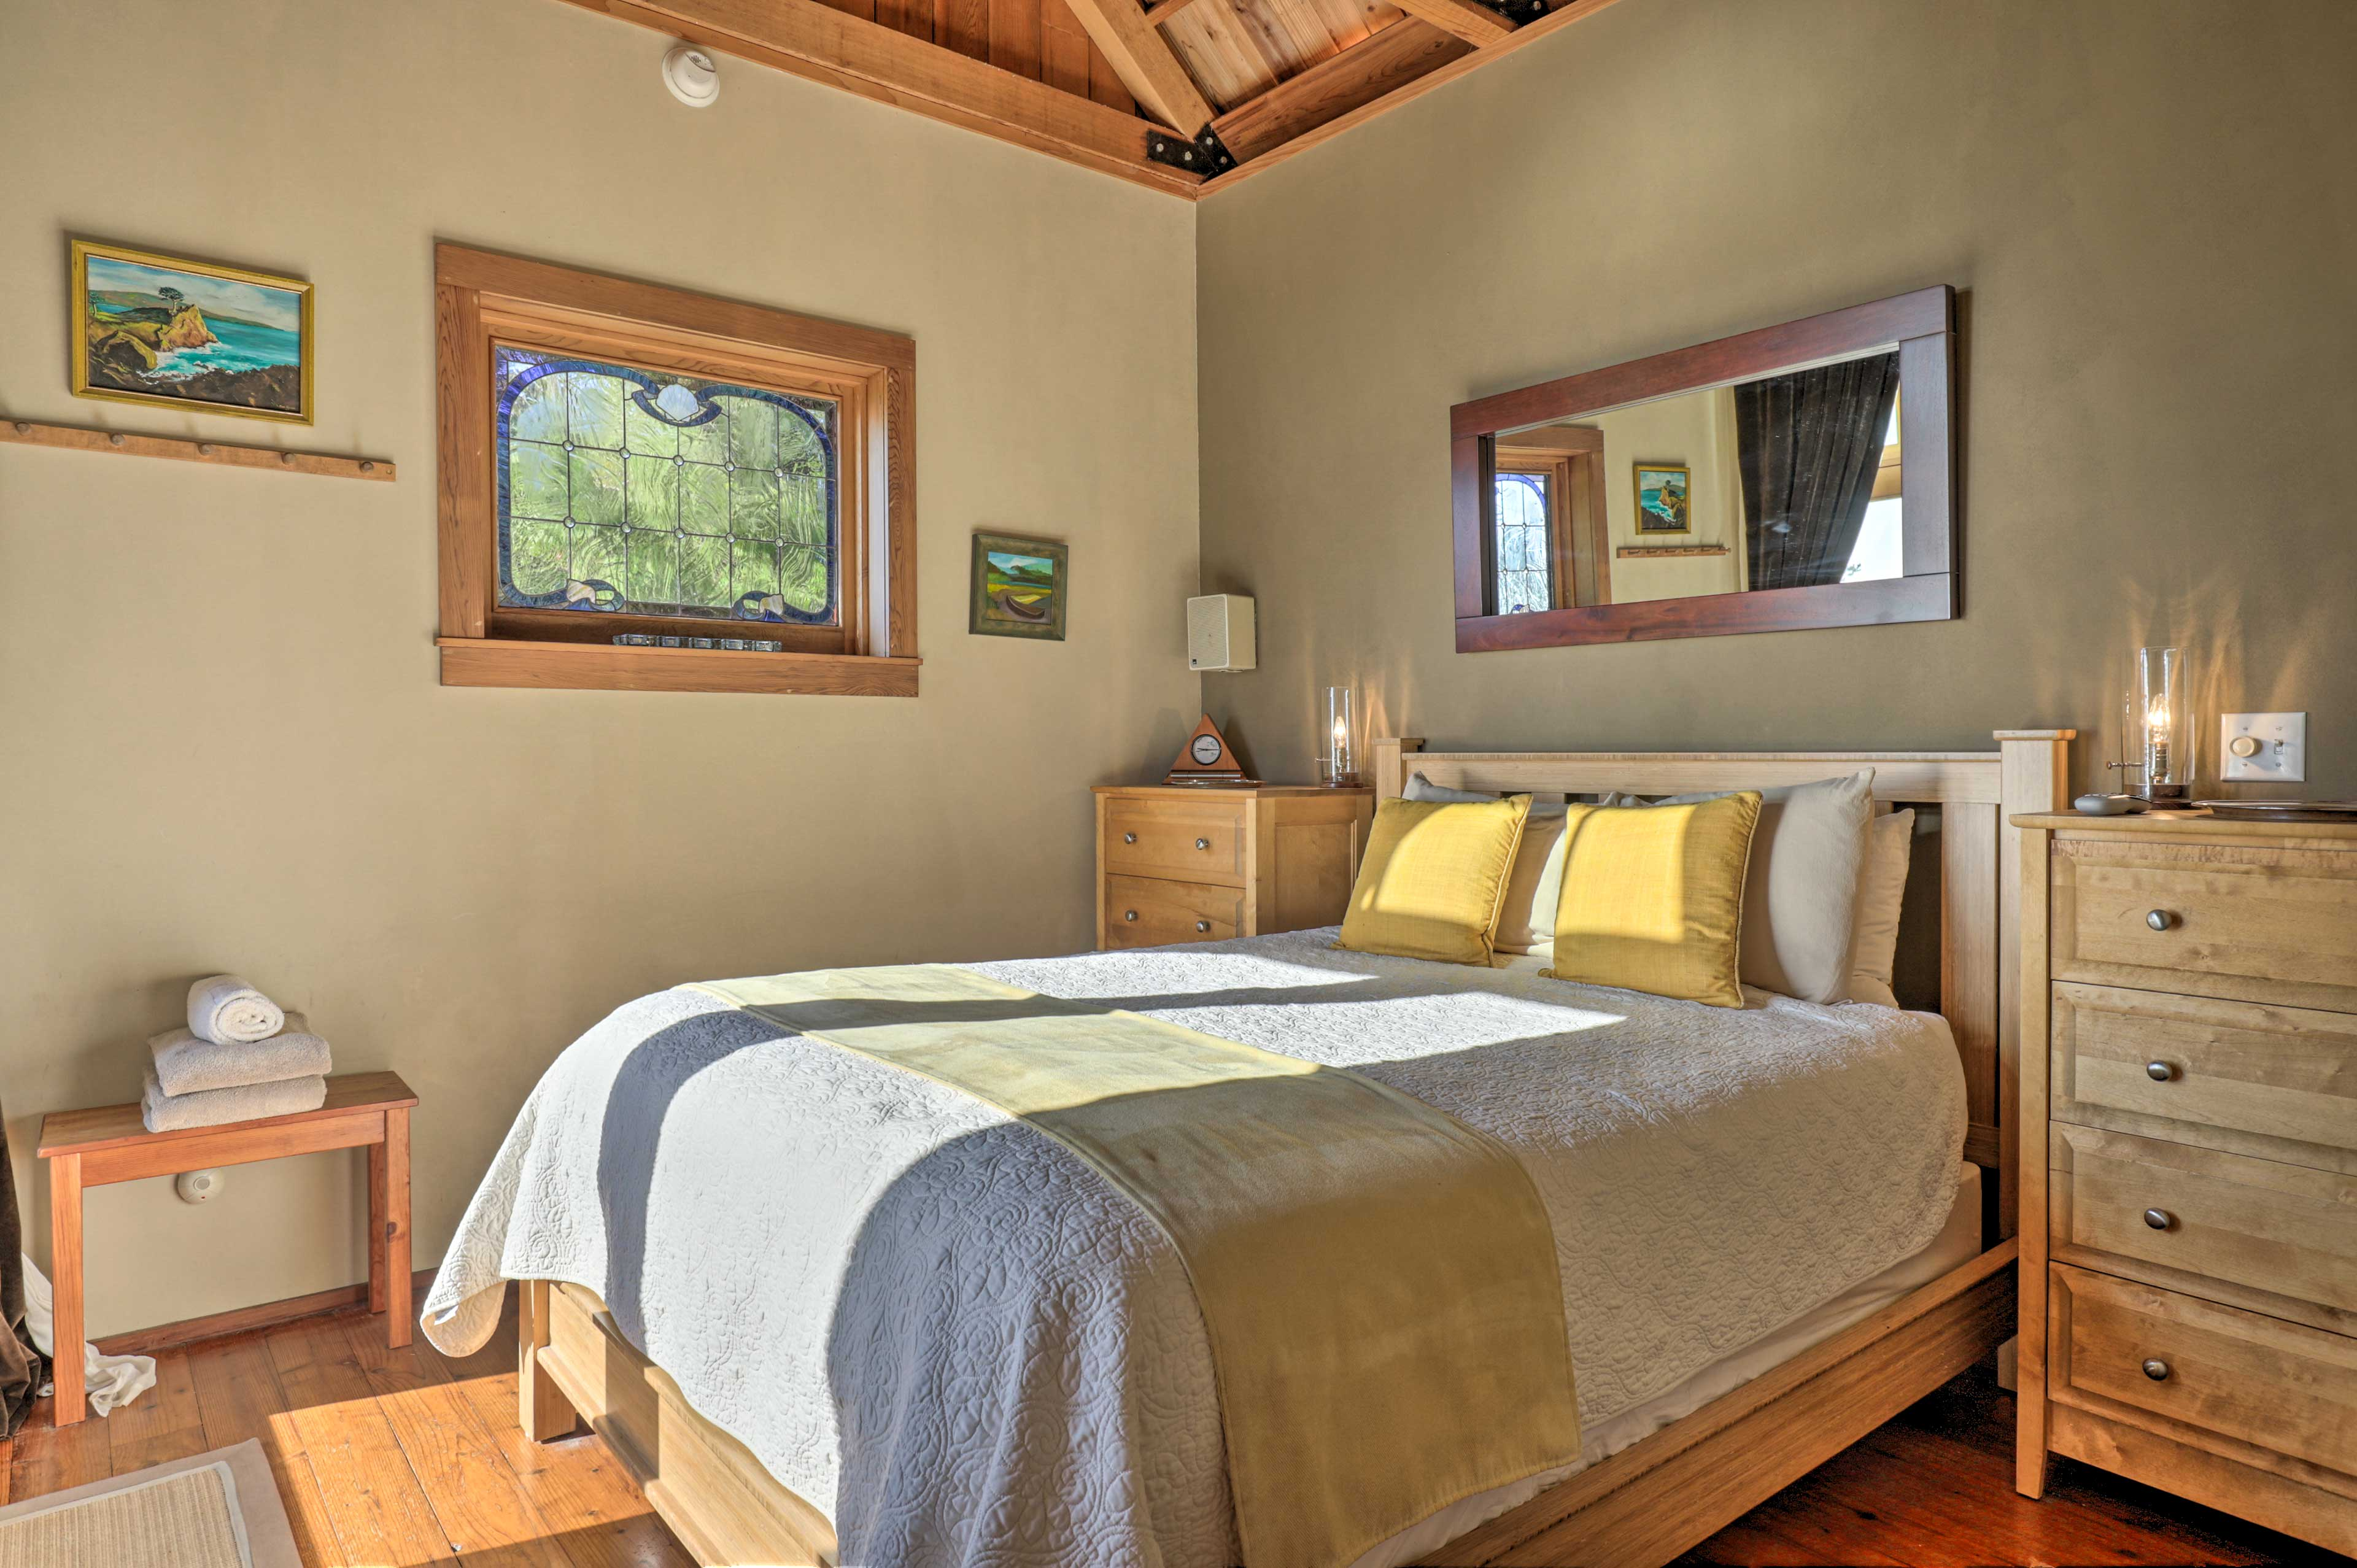 The master suite is complete with a queen bed.